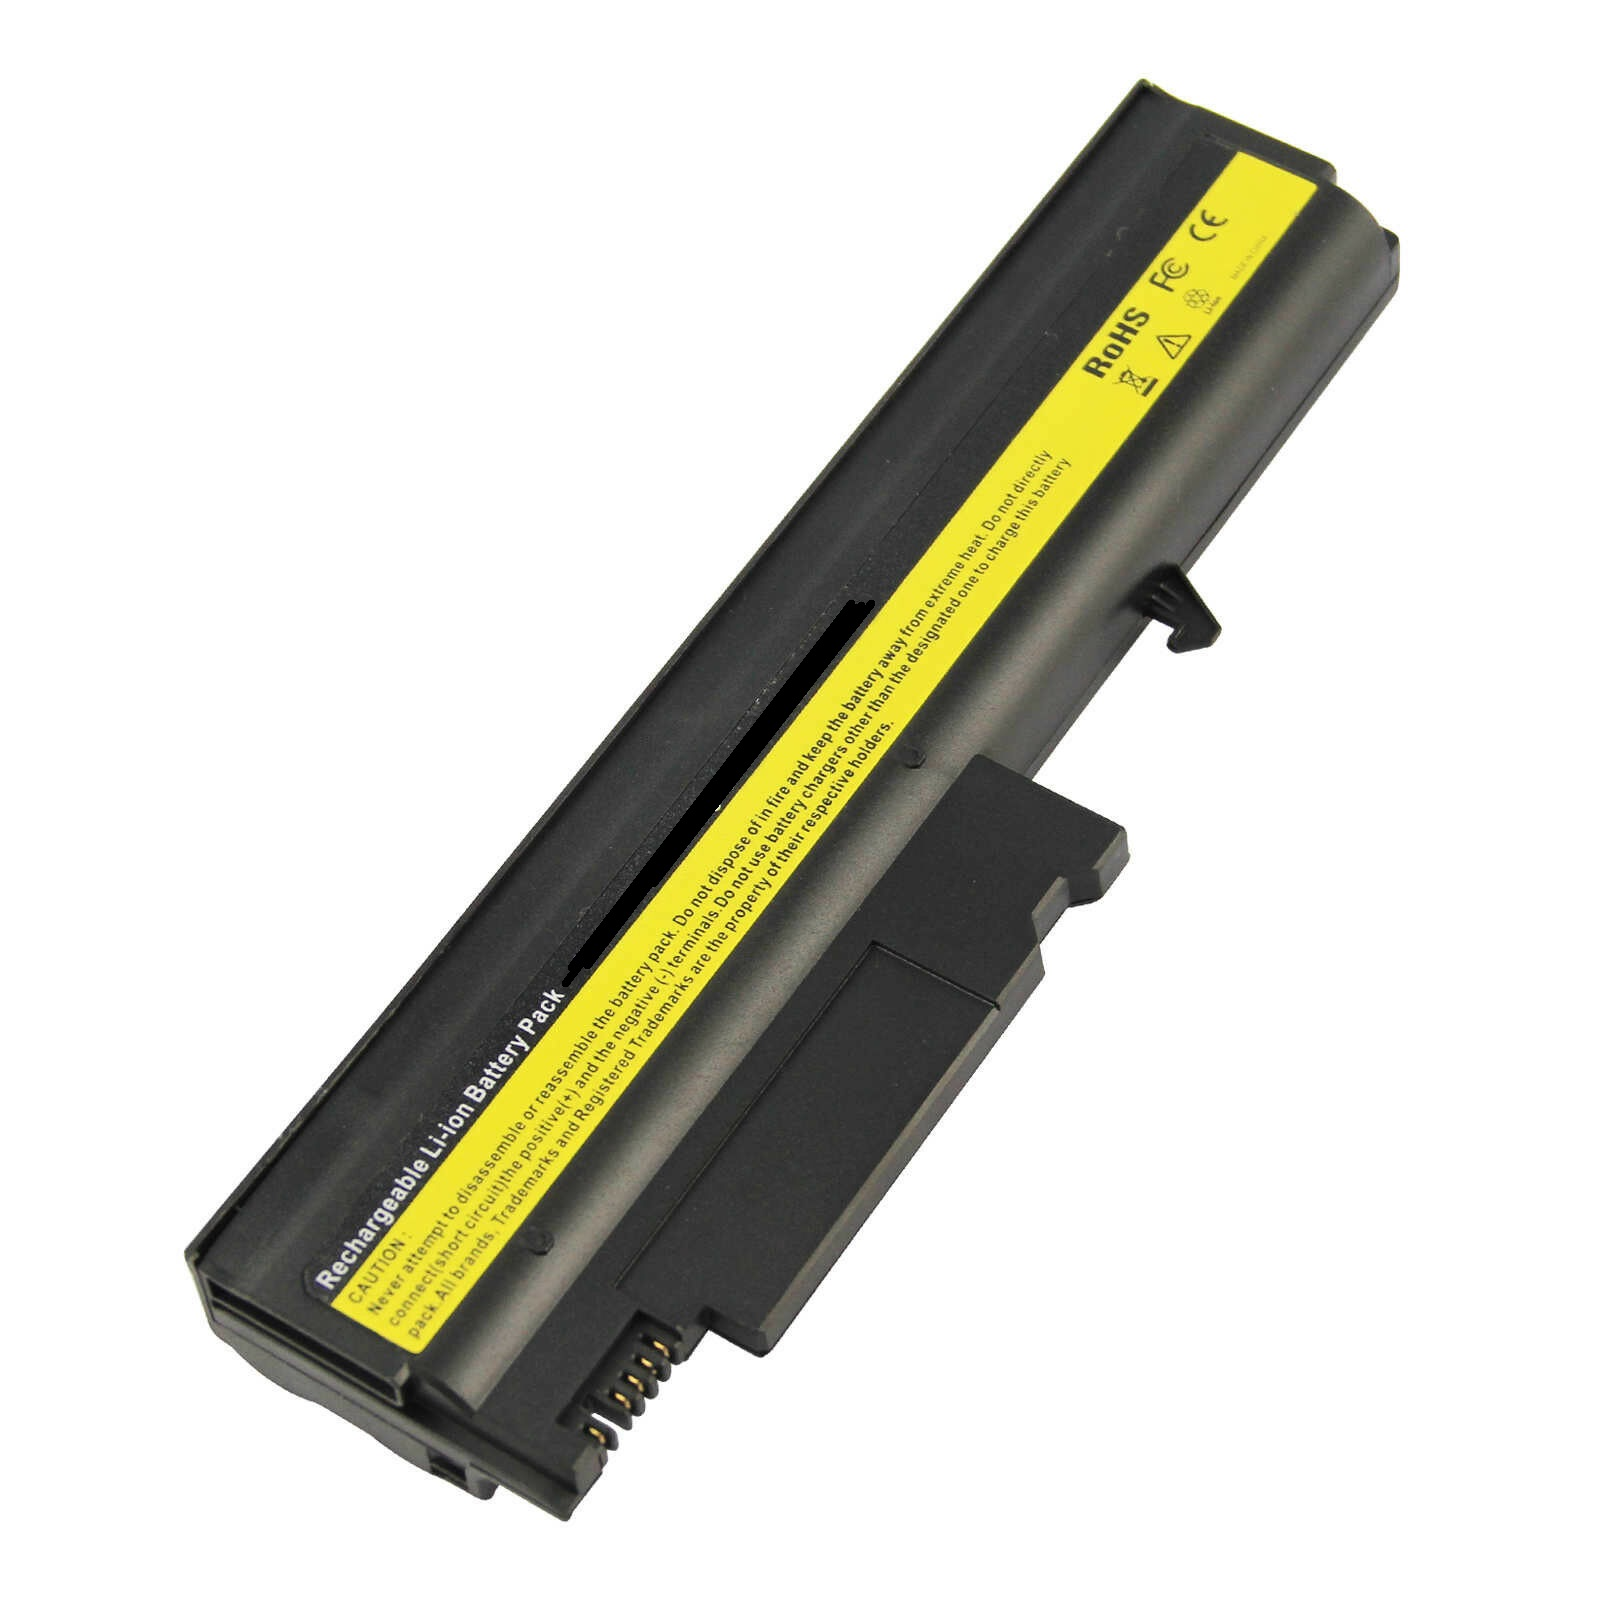 IBM Lenovo 92P1089 ThinkPad Lithium-Ion Battery